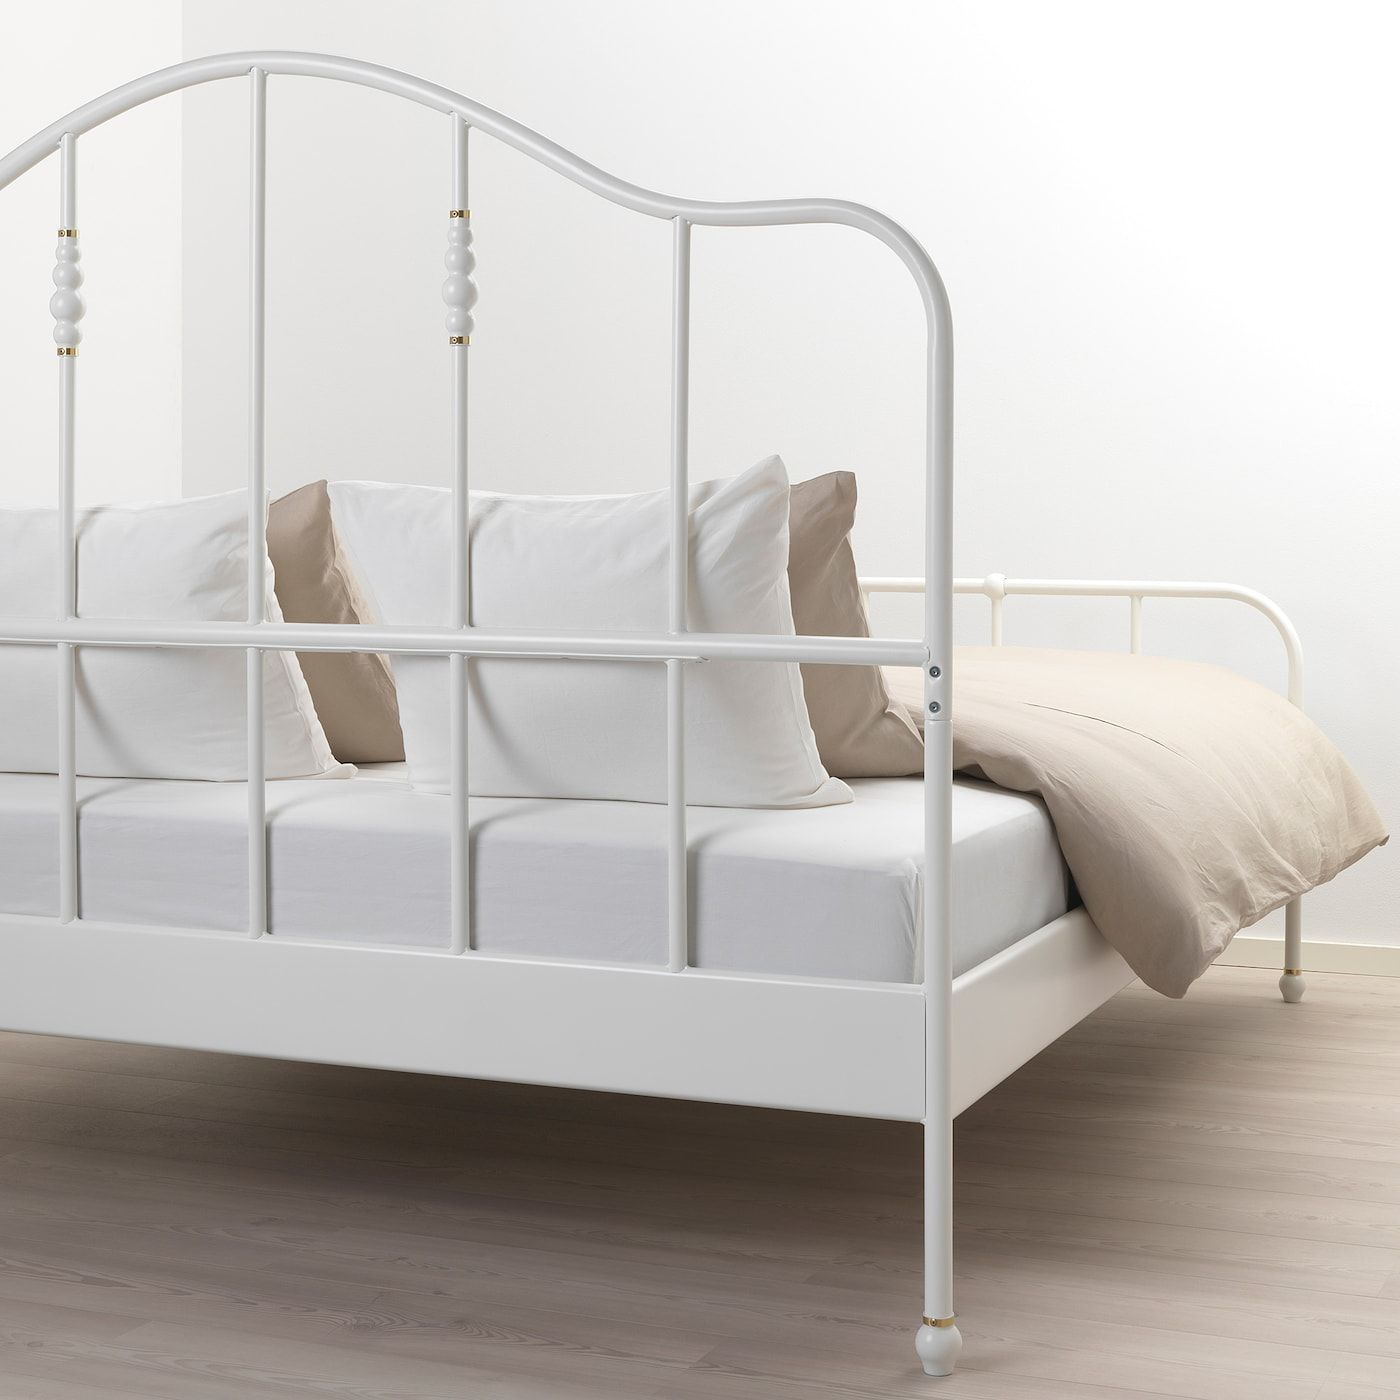 SAGSTUA Bed frame white, Luröy IKEA in 2020 Bed